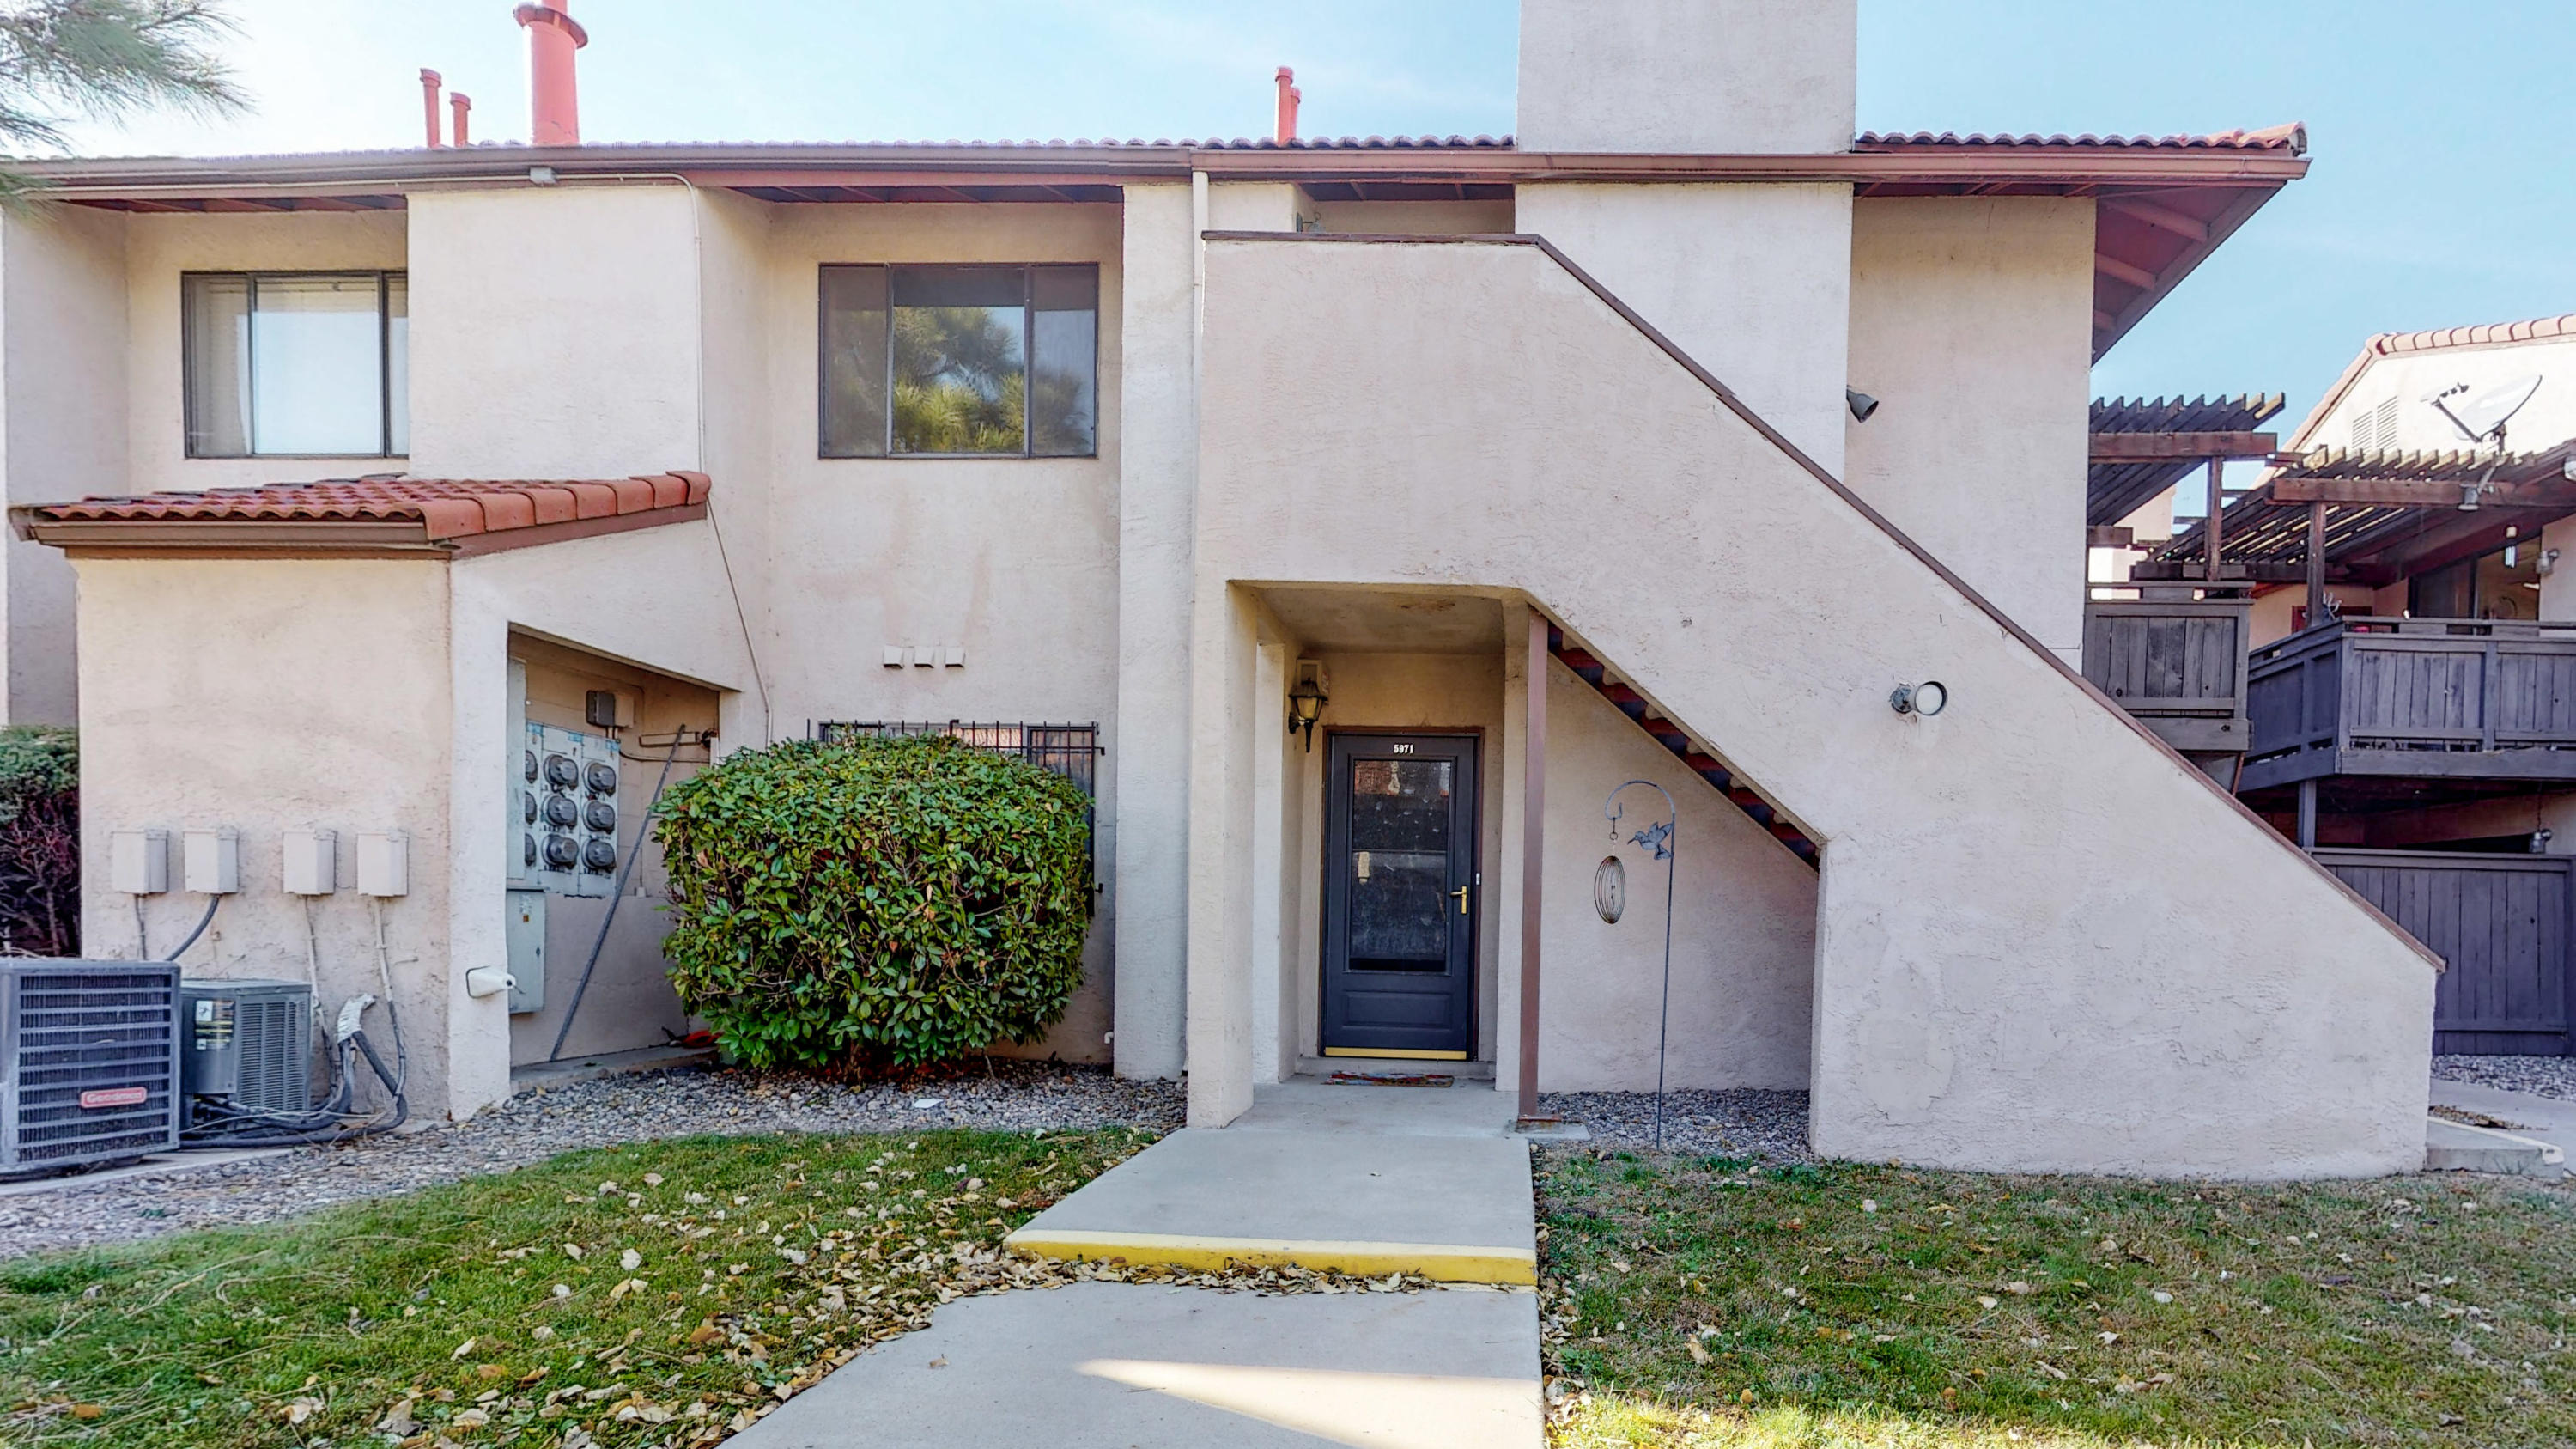 Cozy 1 bedroom condo cosmetically updated!  Completely repainted, new lighting, brand new wood laminate floors, refurbished cabinets, and new granite in the kitchen and bathroom!  Private outdoor balcony.  Community area has large pool & hot tub for your winter or summer enjoyment!